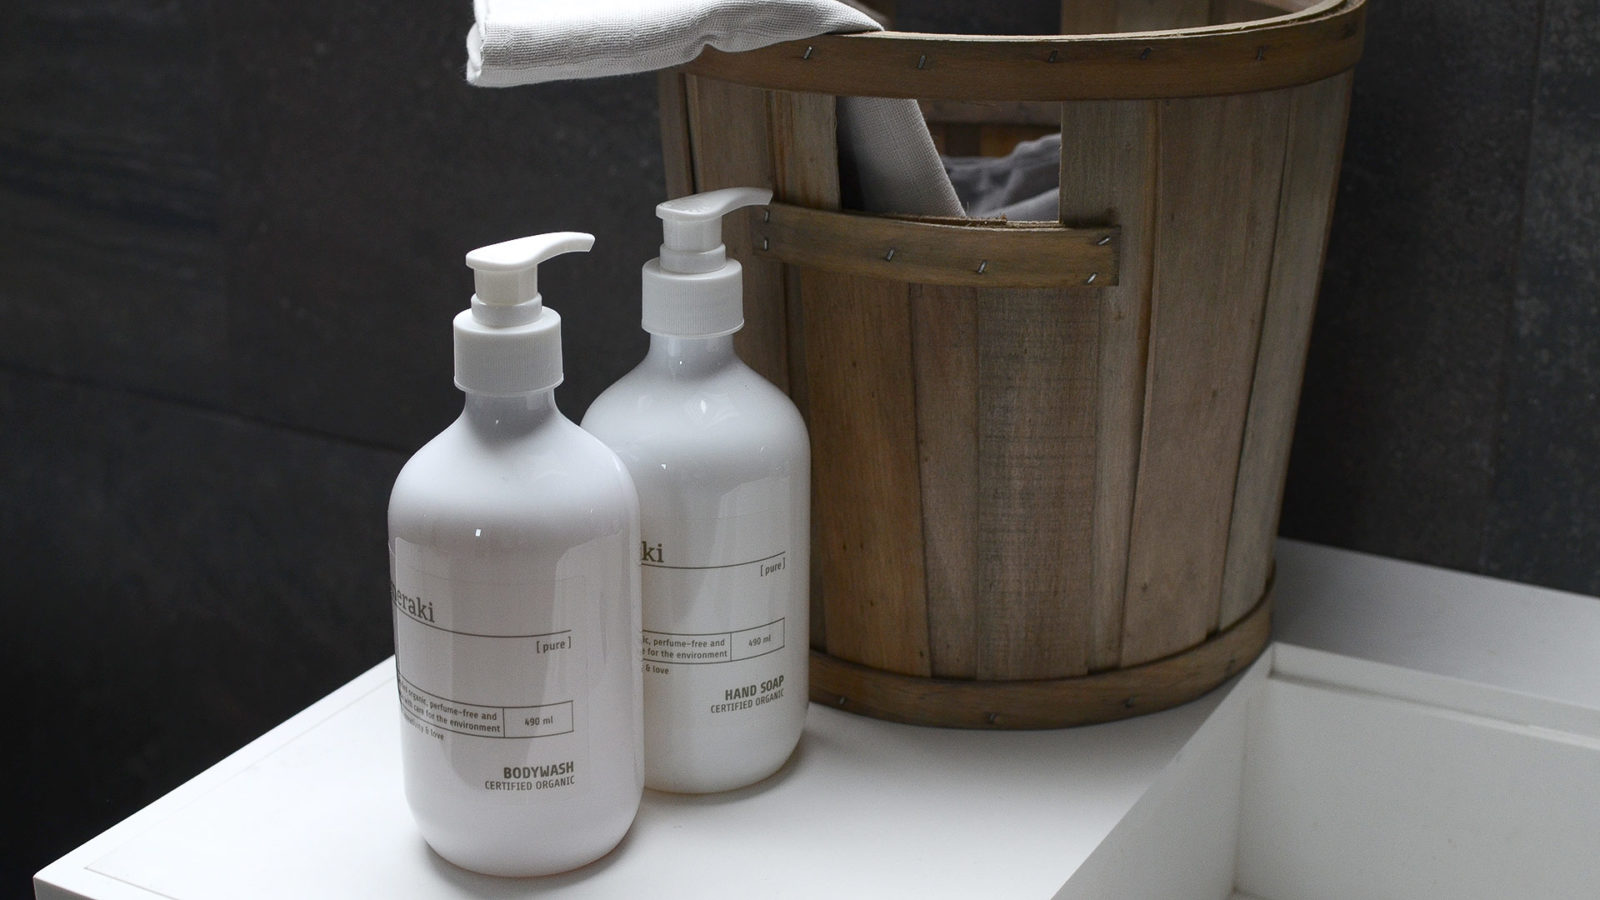 meraki perfume and paraben free organic toiletries